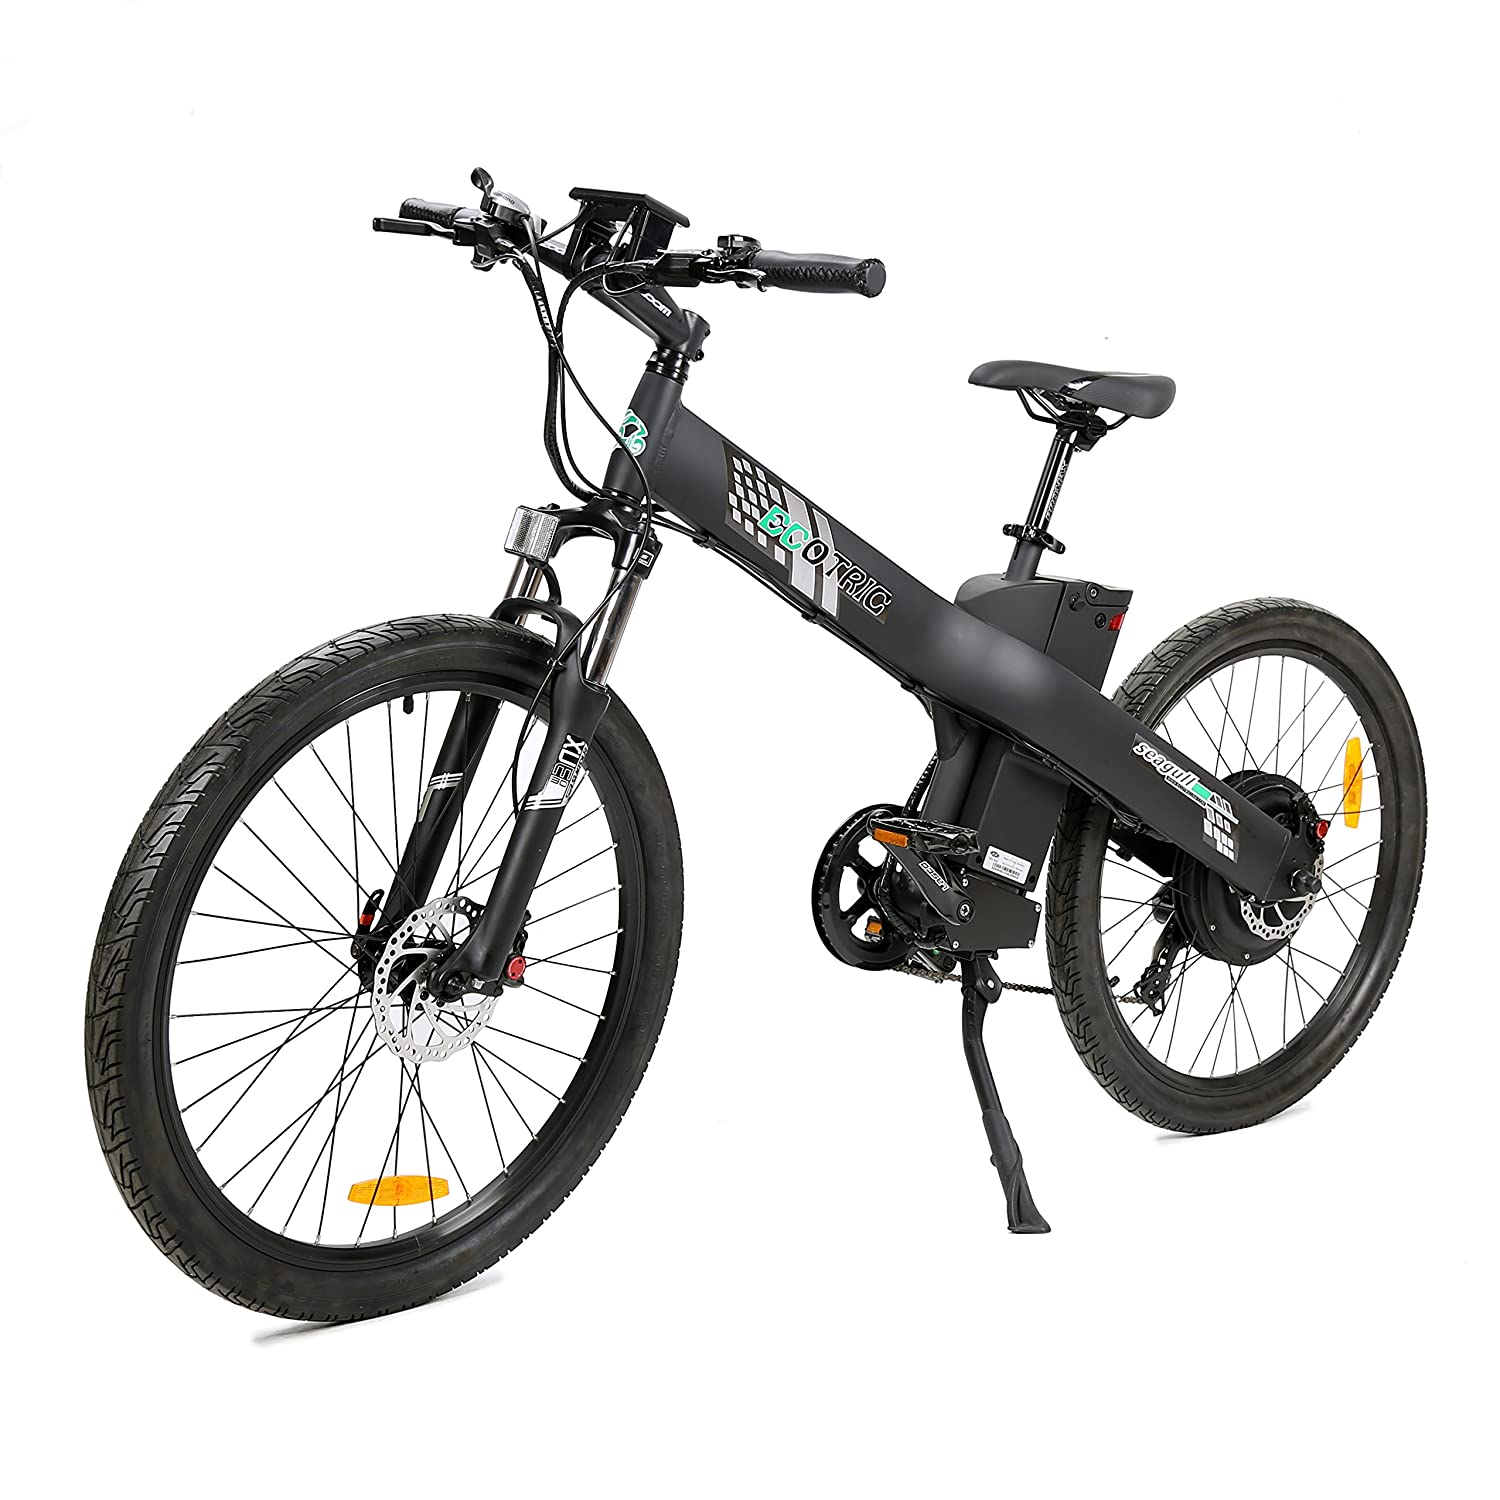 "ECOTRIC 26"" Electric Bike 2018 Update 1000W 48V/12AH Electric City Bicycle  Shimano 7 Speeds LED Display Lithium Battery,90% Pre-Assembled,Max Speed:"